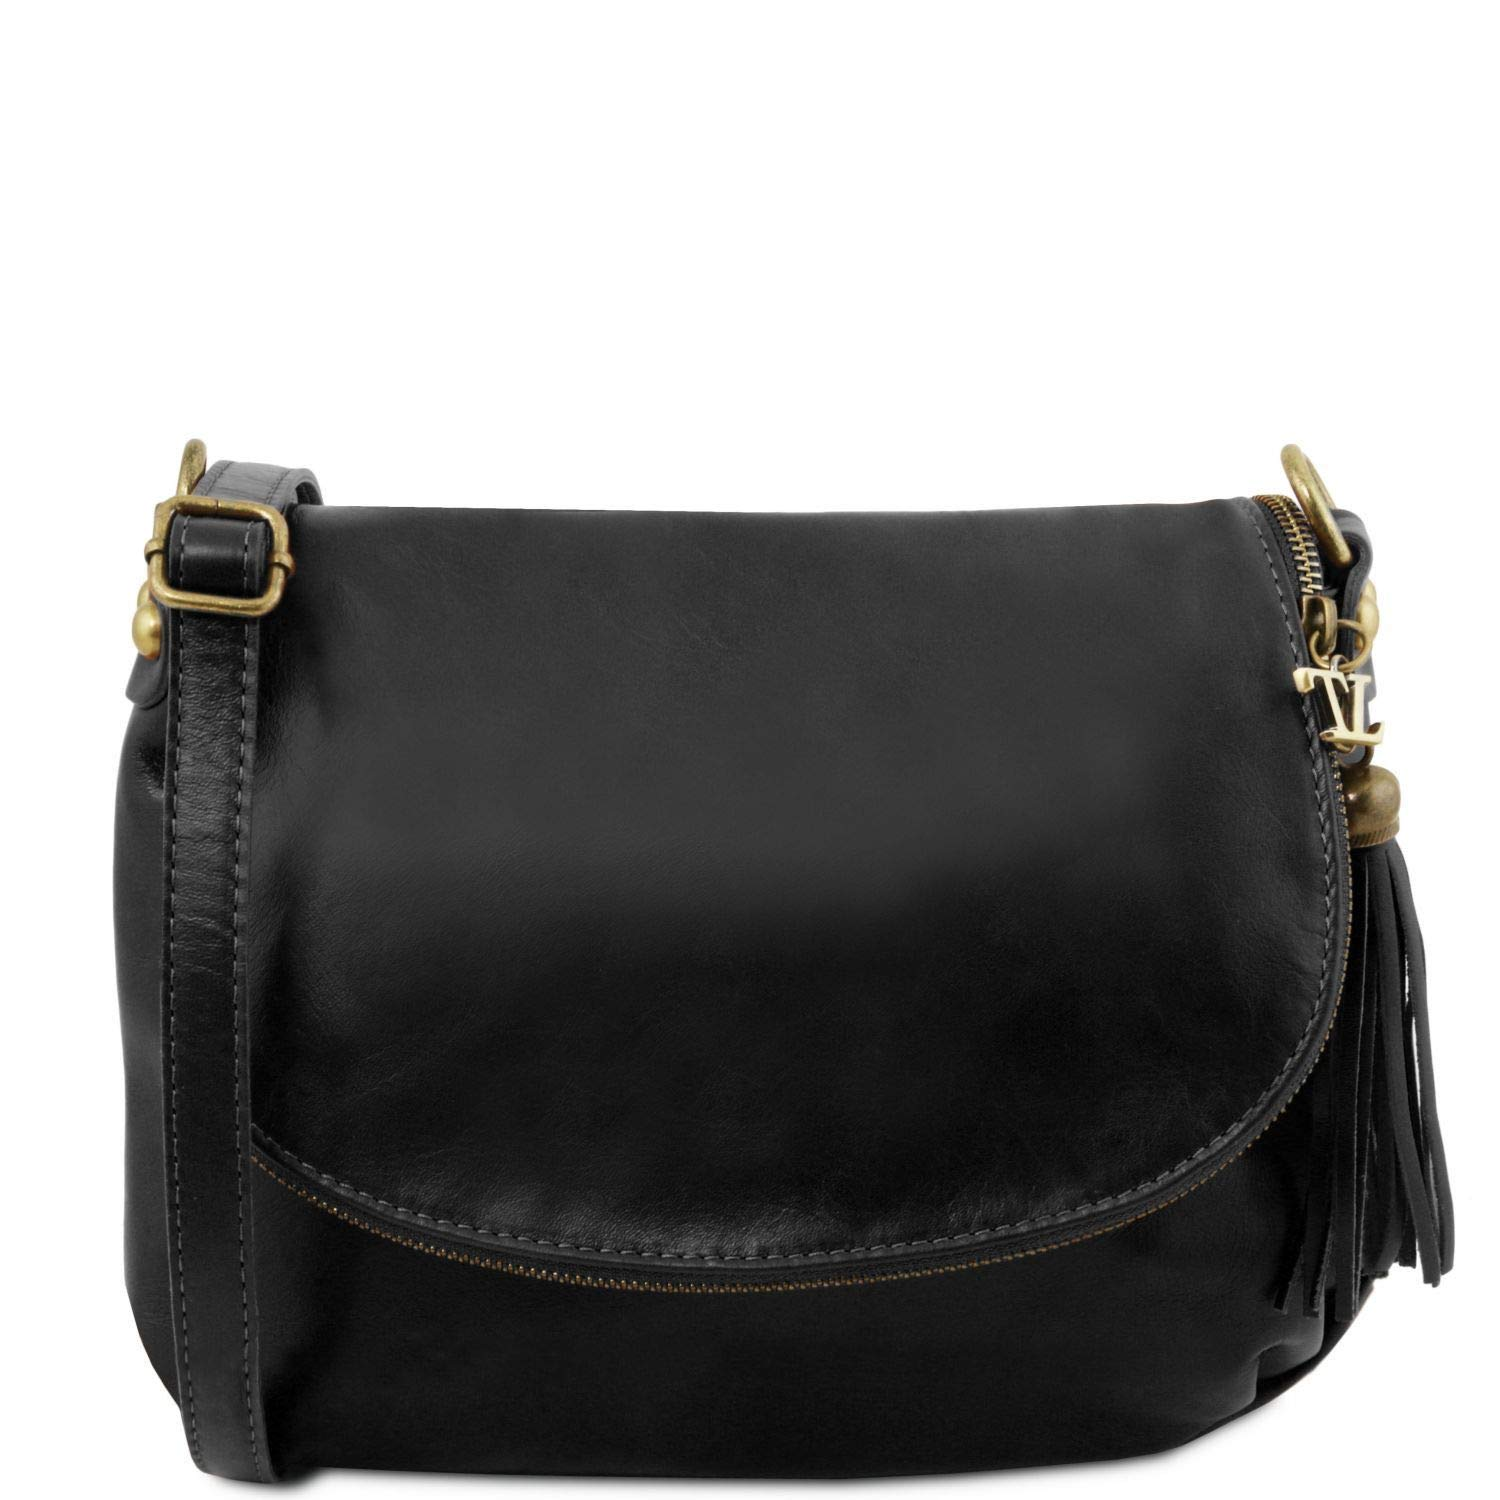 7ddfbf961331 Amazon.com  Tuscany Leather TLBag Soft leather shoulder bag with tassel  detail Black  Tuscany Leather Official Store